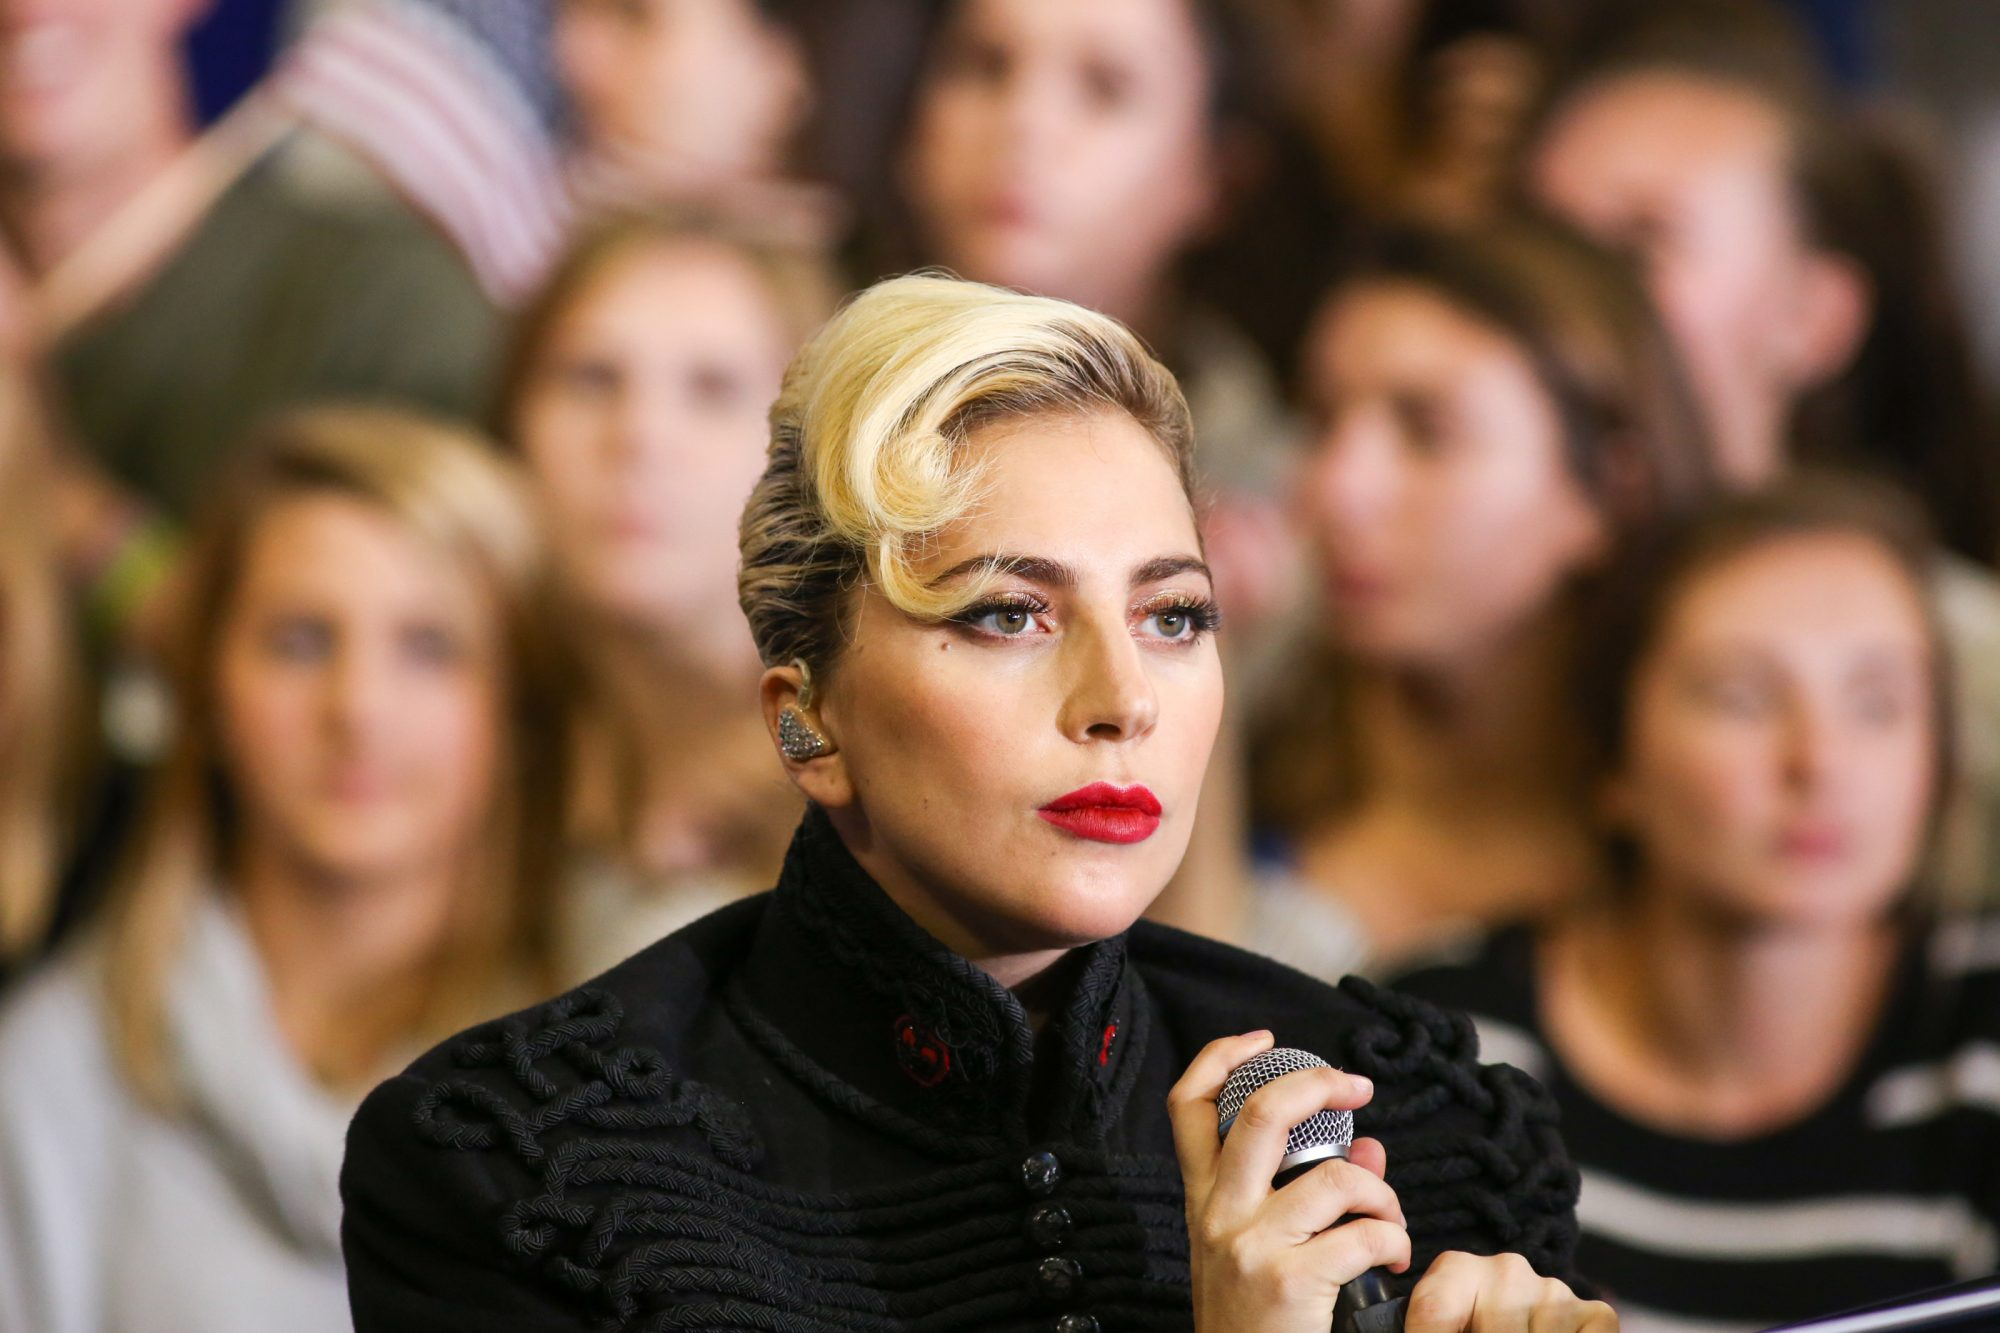 Lady Gaga Is Clearing Up a Common Myth About PTSD